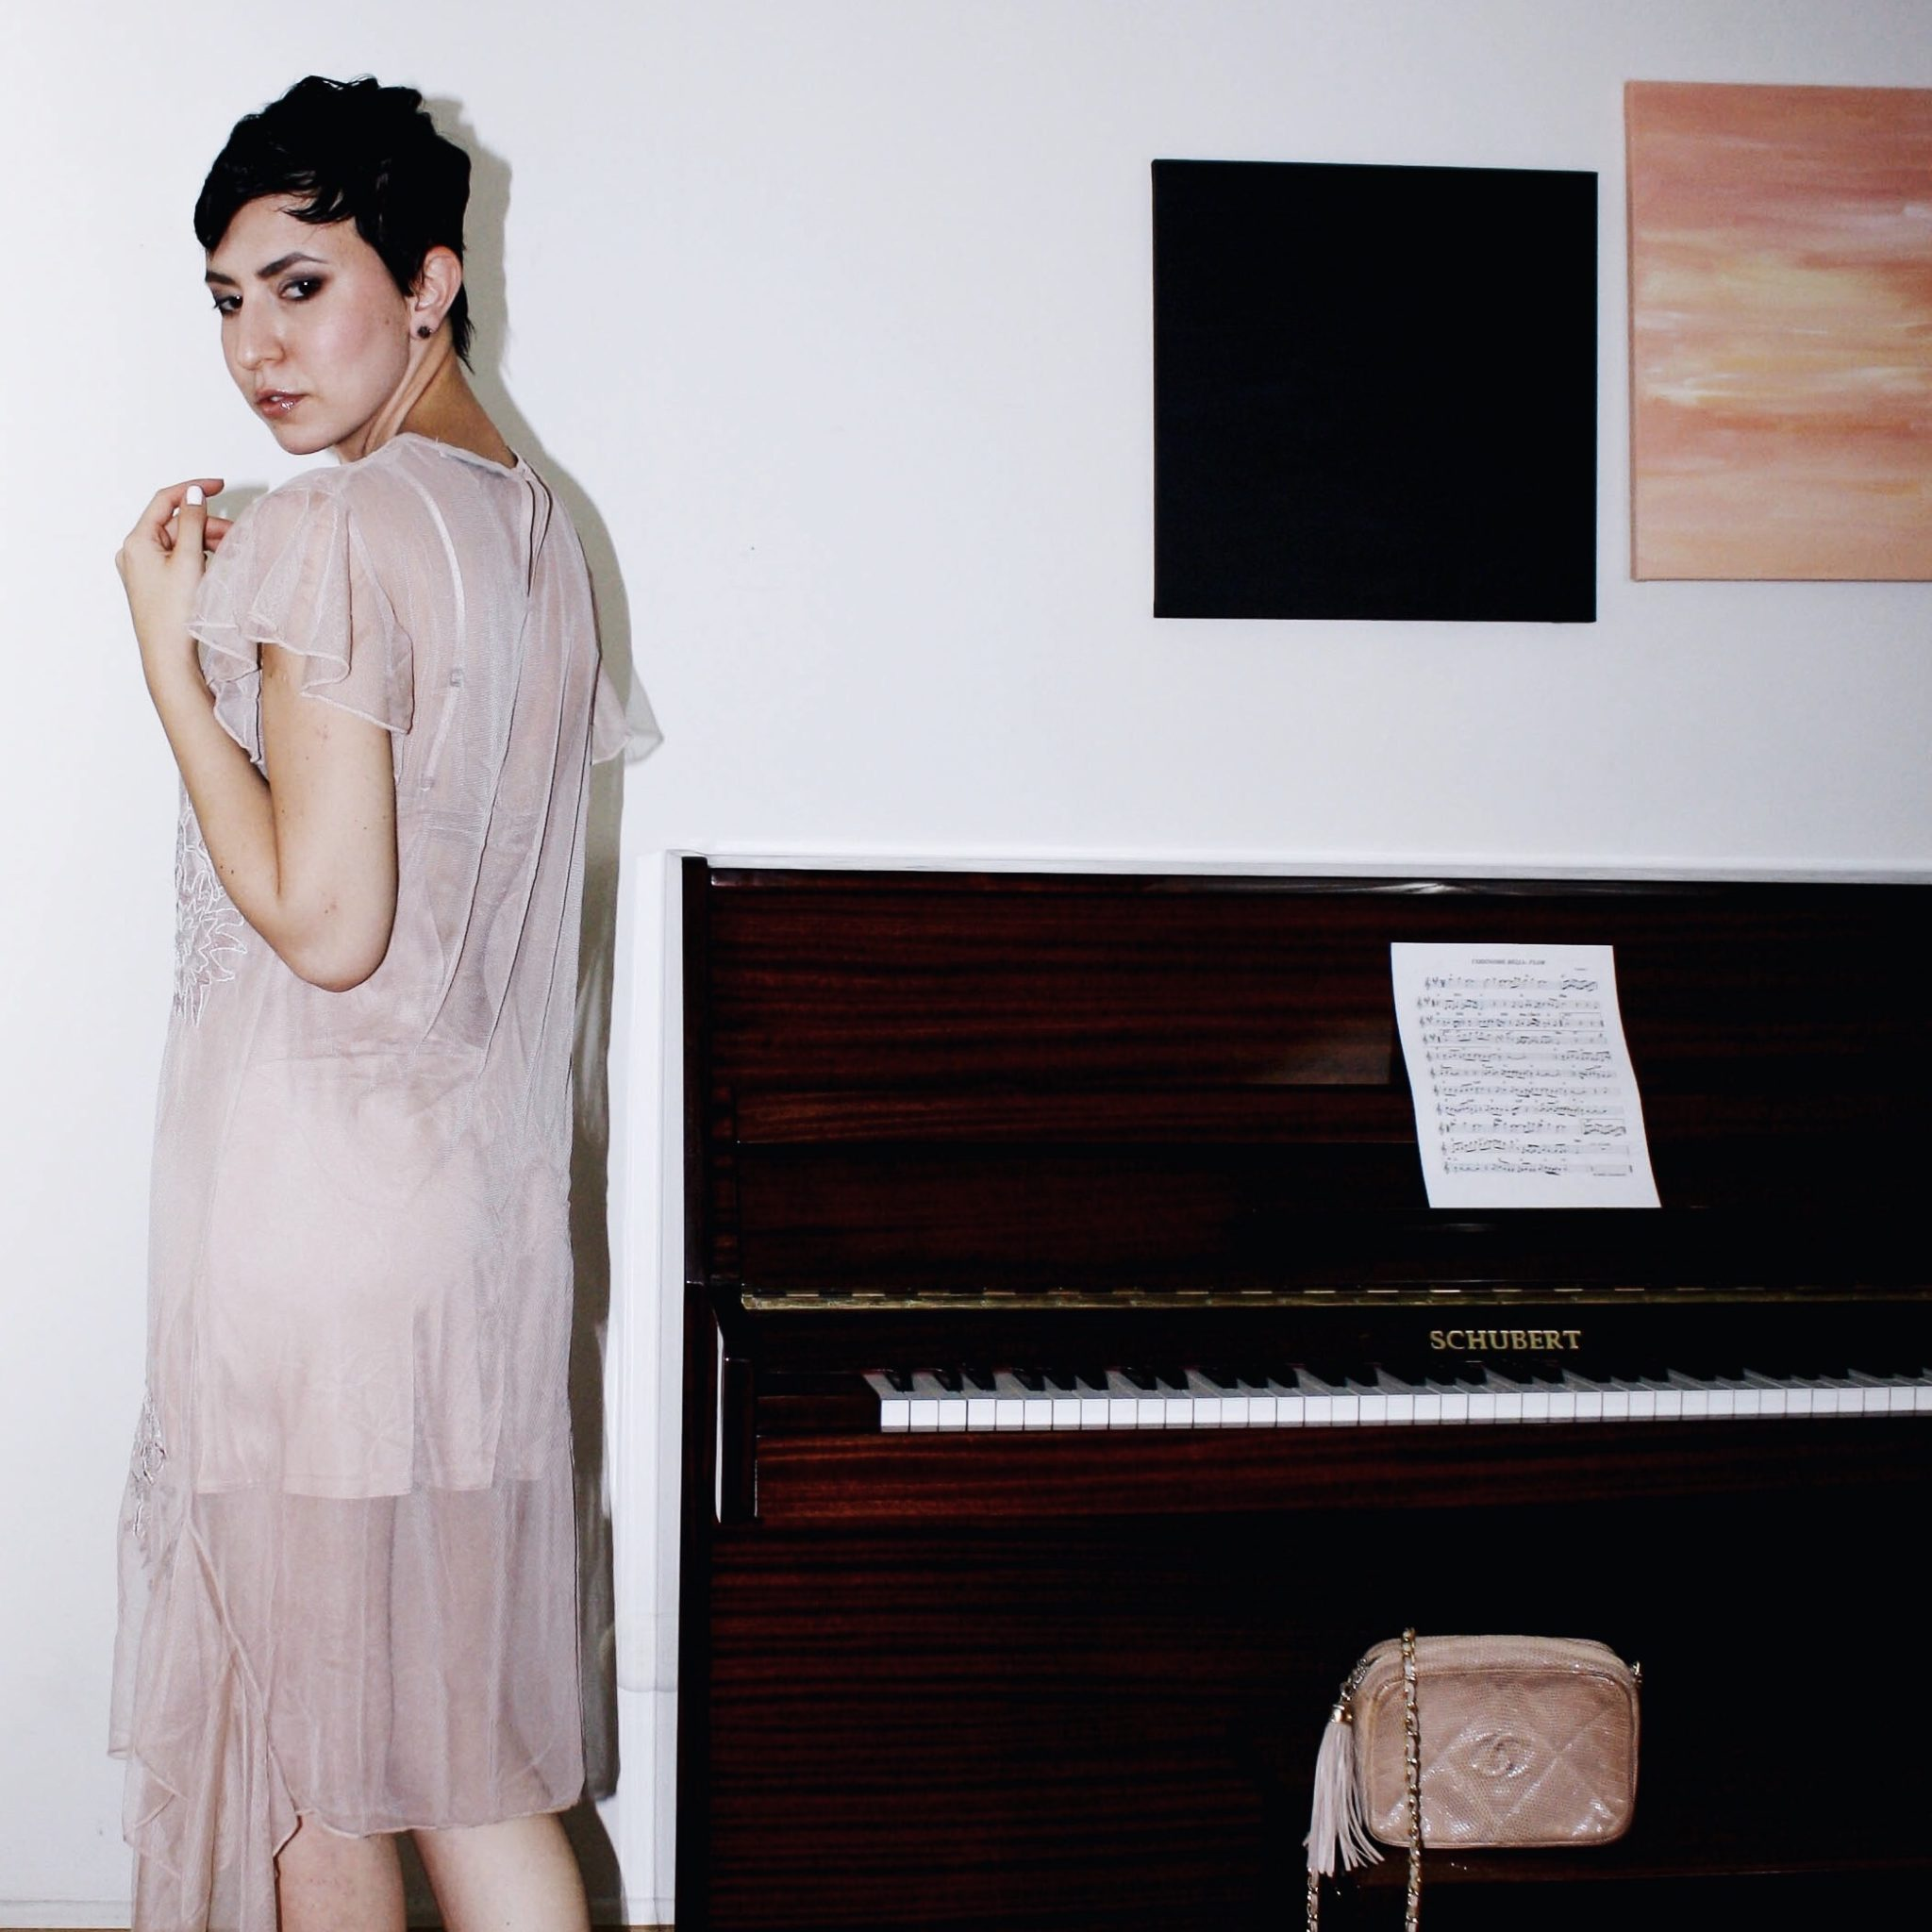 zara dress tulle naked dress embroidery chanel bag suede shoes giambattista valli piano girl